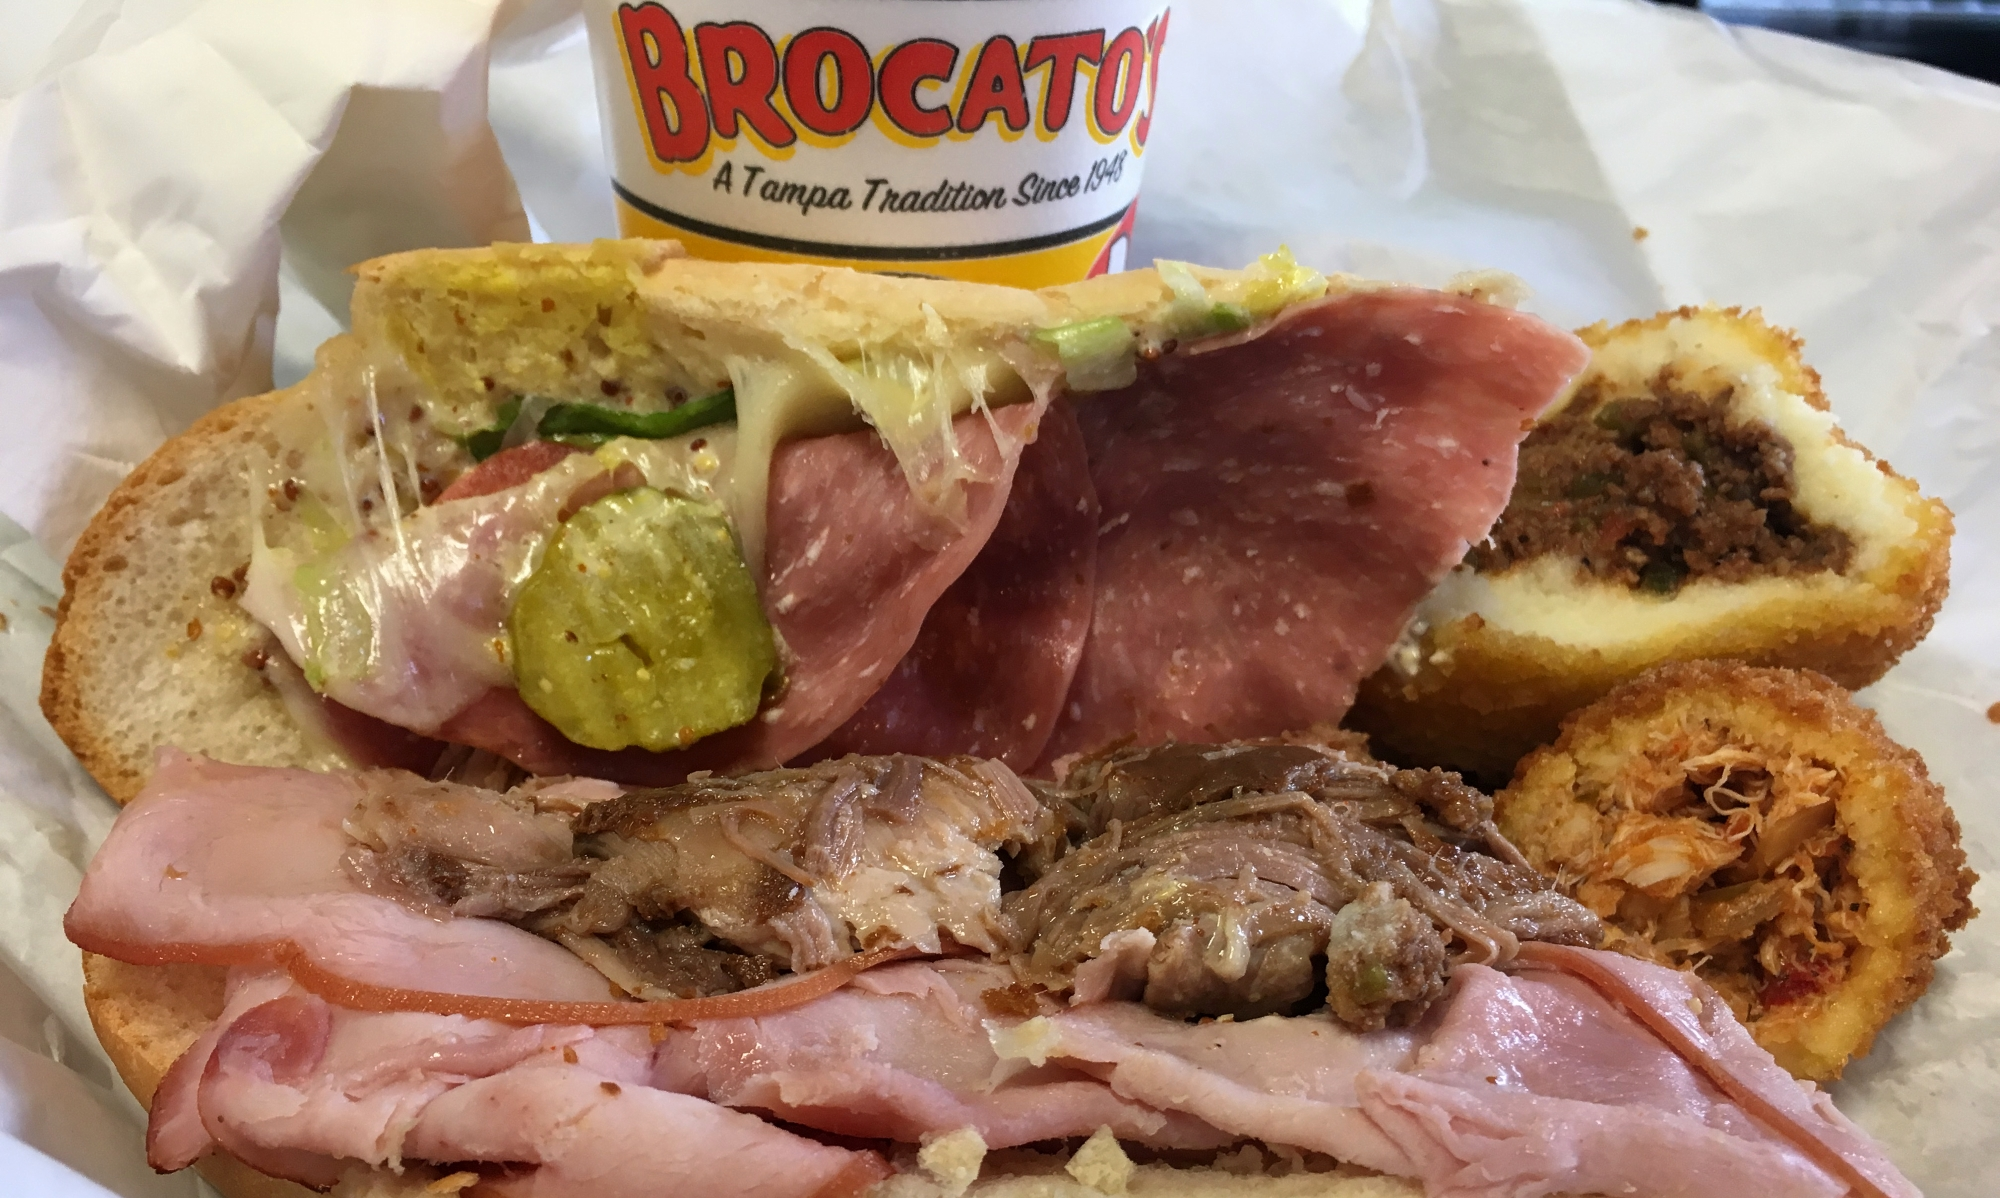 Image: Brocato's Sandwich Shop Cuban sandwich